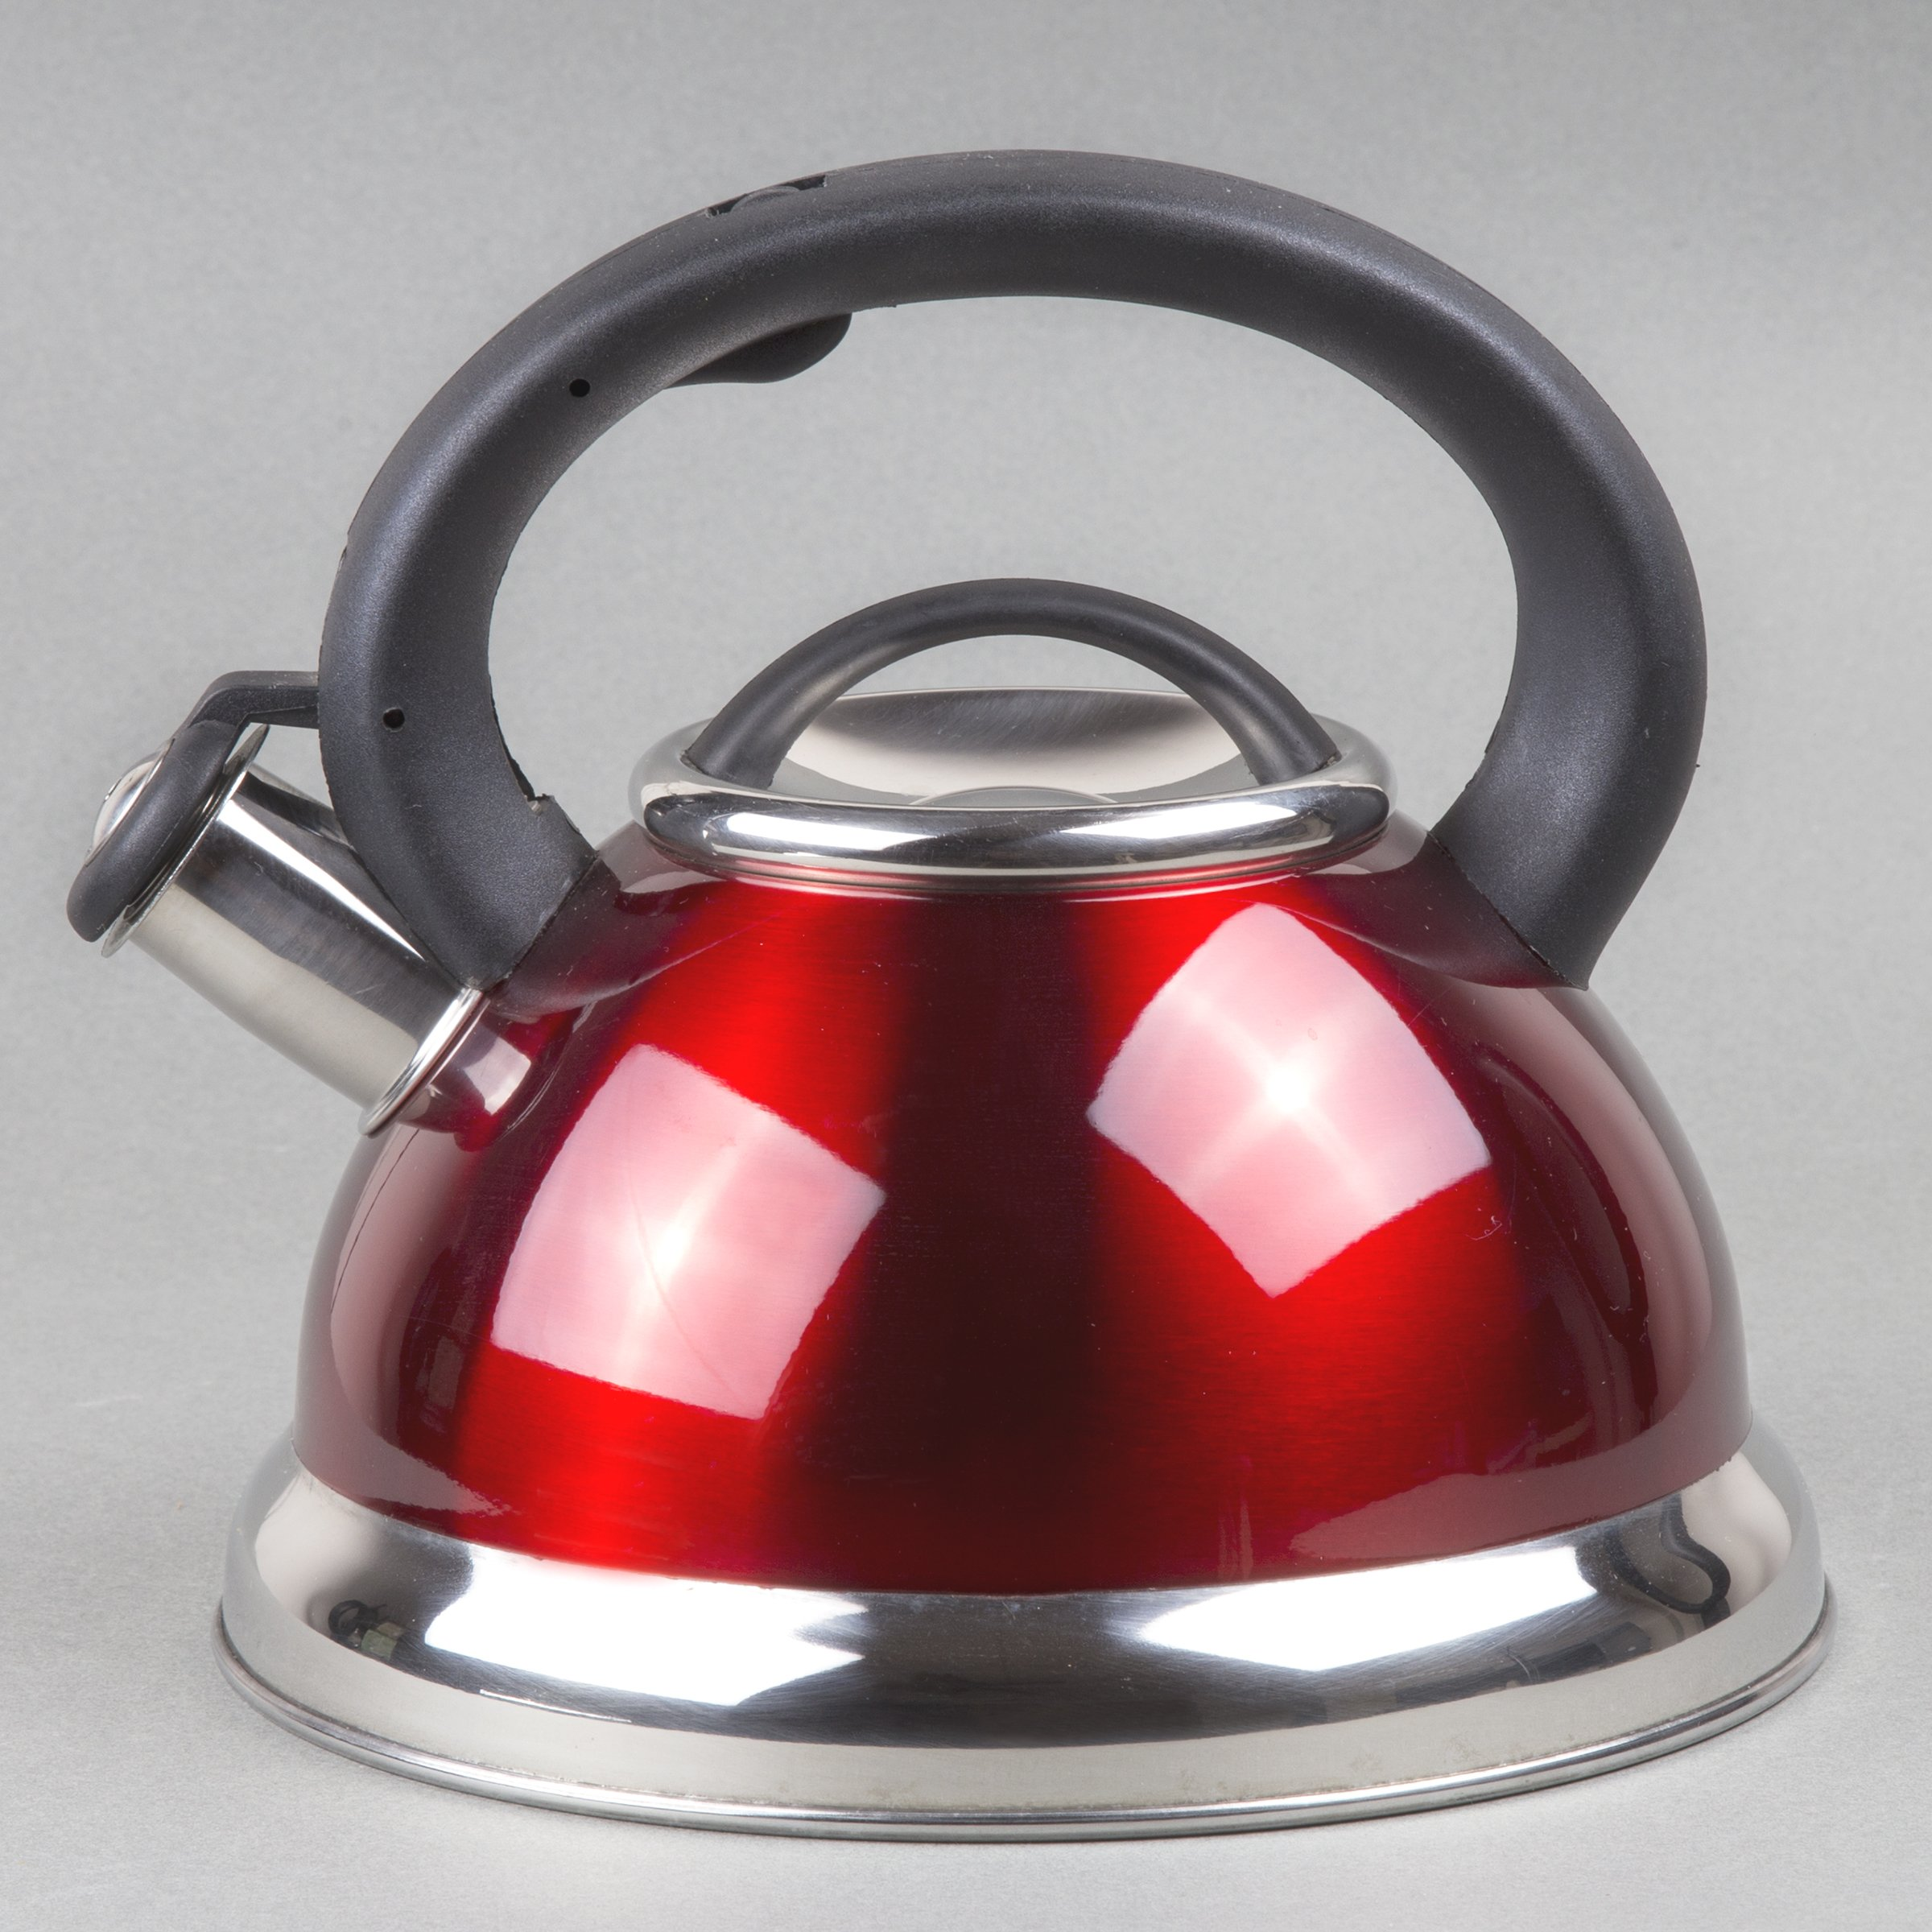 Creative Home Alexa 3.0 Whistling Tea Kettle, Cranberry by Creative Home (Image #5)